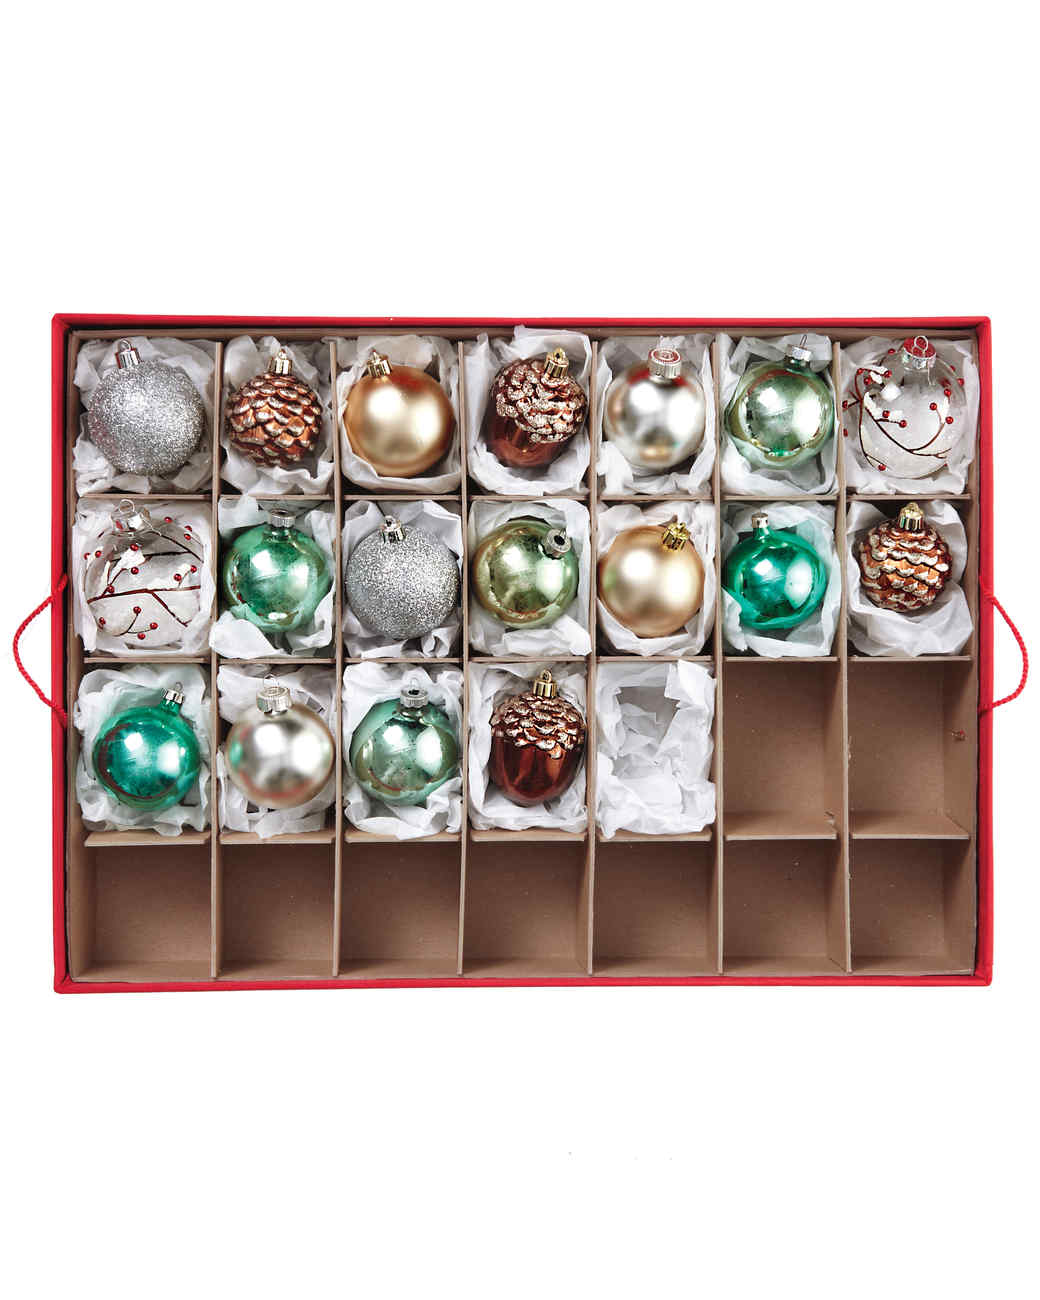 Try A Box With Dividers For Not So Precious Ornaments